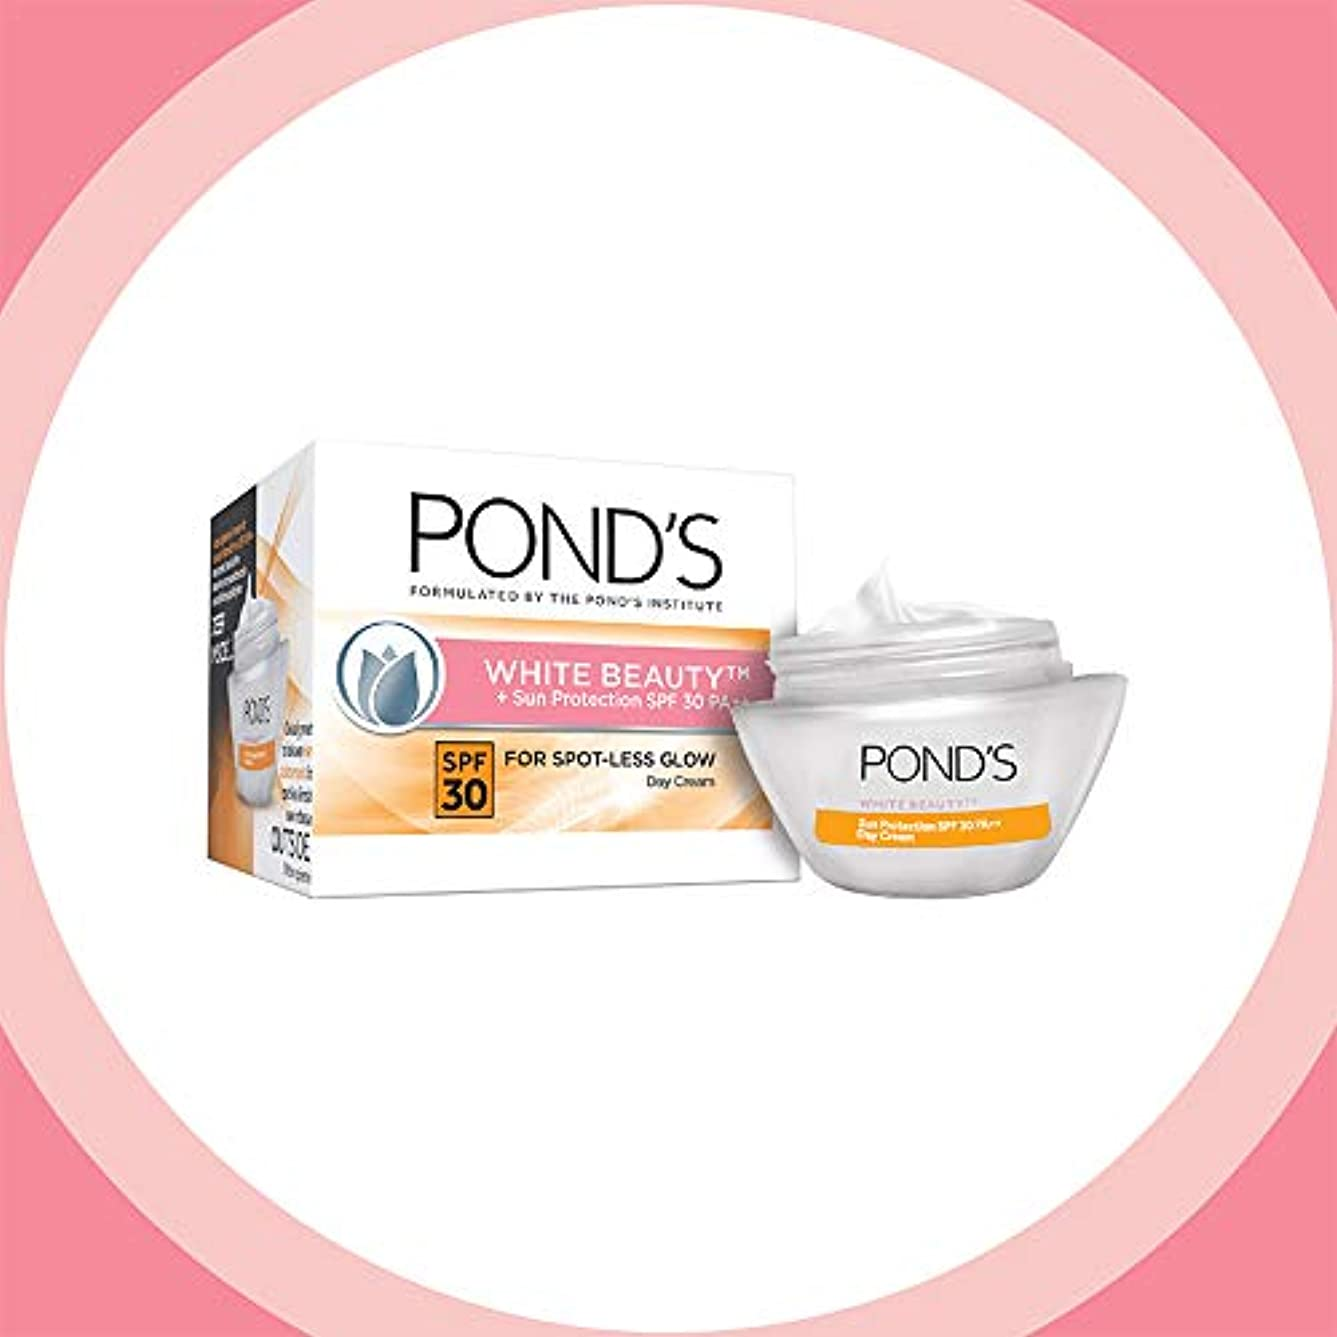 エーカー楽観細分化するPOND'S White Beauty Sun Protection SPF 30 Day Cream, 35 gms (並行インポート) India